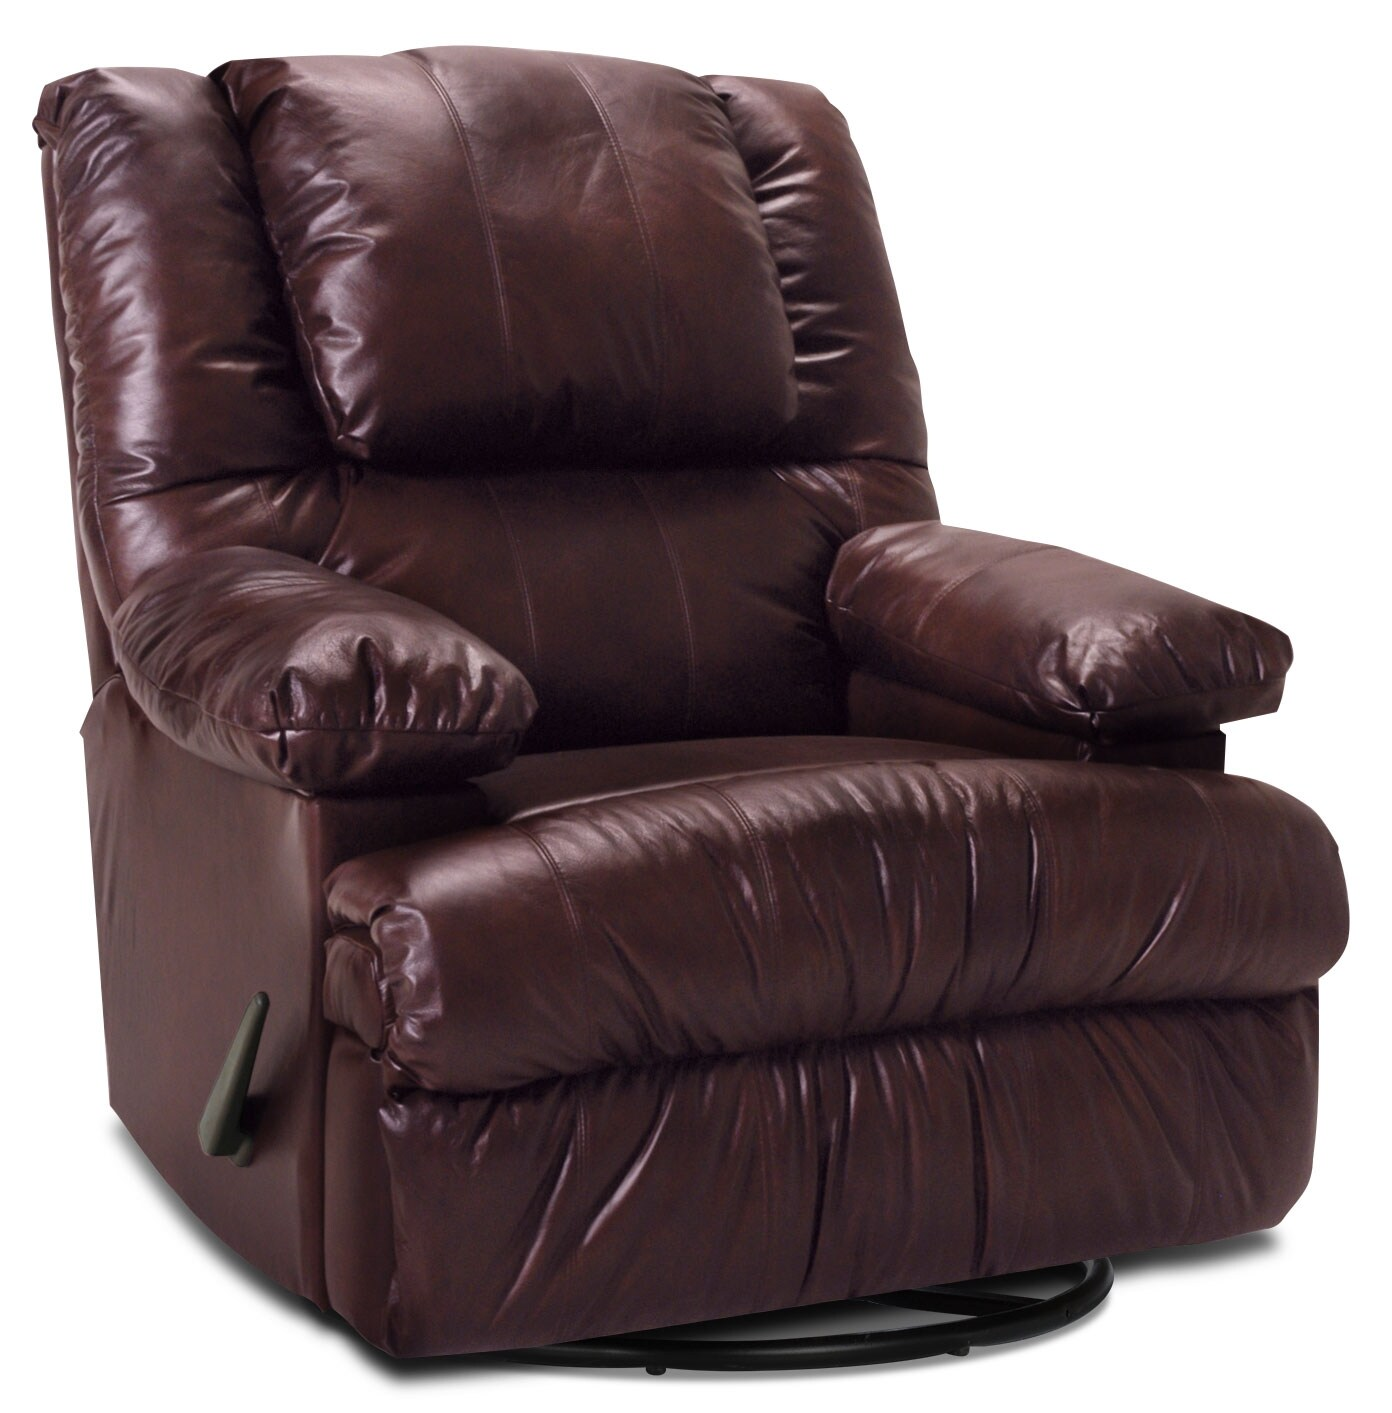 Living Room Furniture - Designed2B Recliner 5598 Genuine Leather Swivel Rocker with Storage Arms - Burgundy